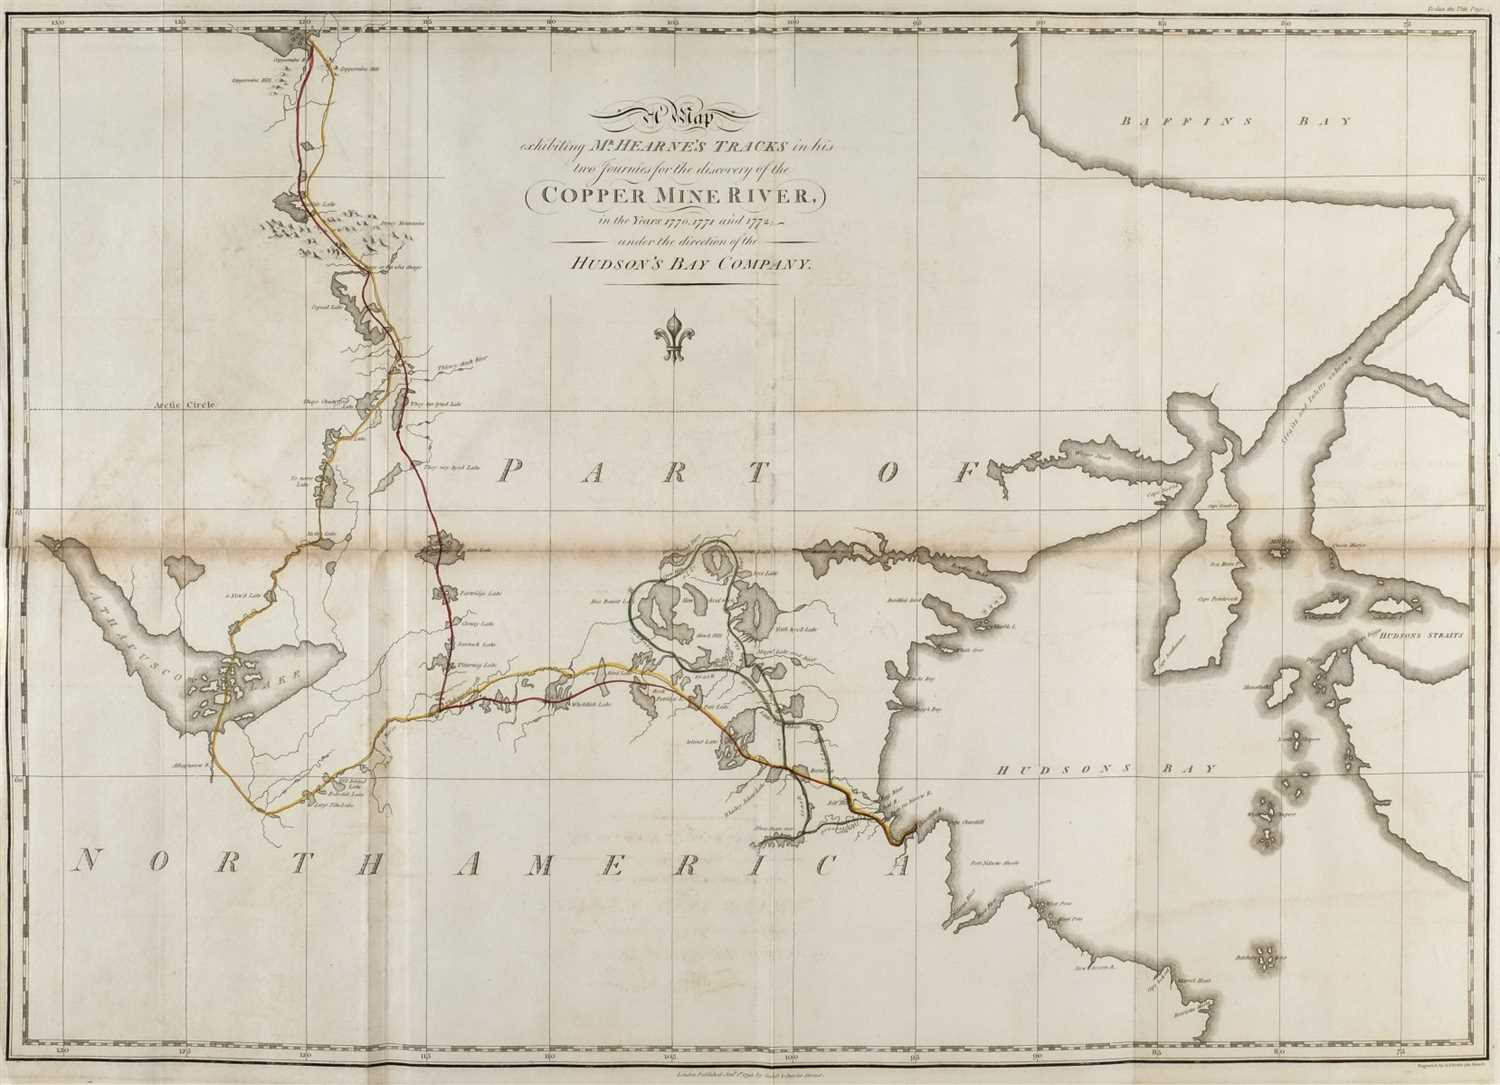 Lot 320-Hearne (Samuel). A Journey from Prince of Wales's Fort in Hudson's Bay, to the Northern Ocean, 1795